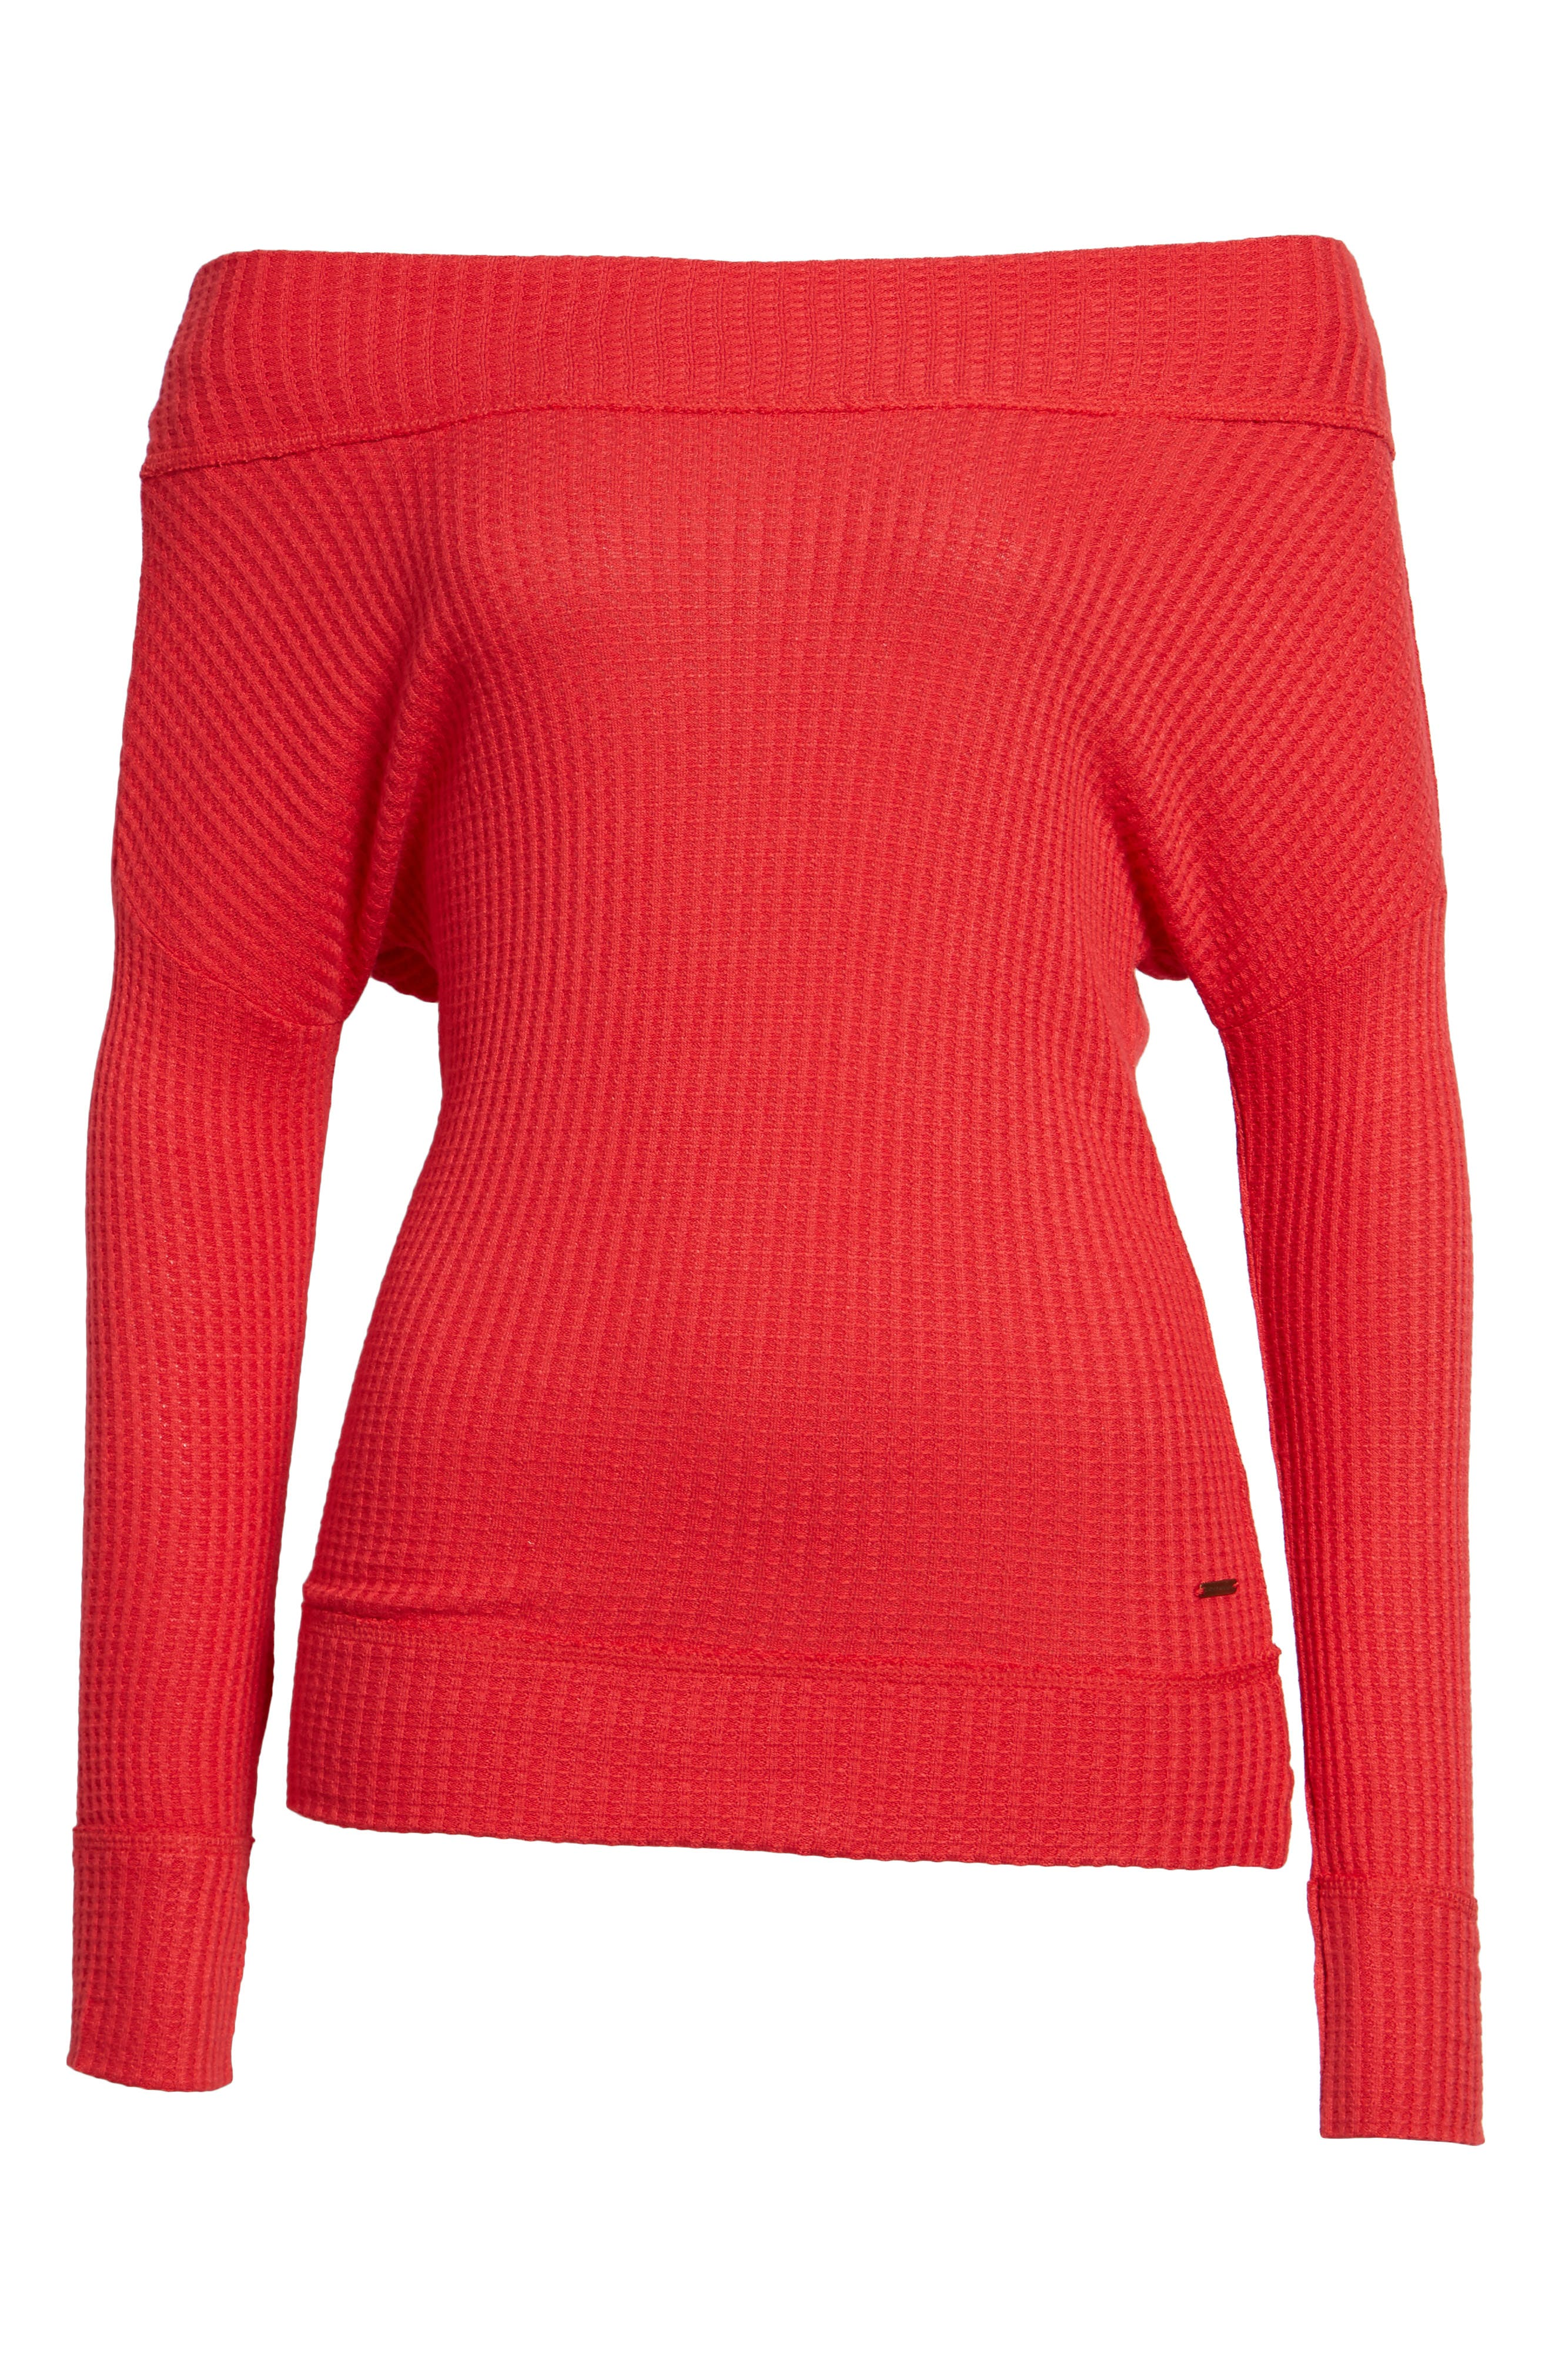 Off the Shoulder Thermal Knit Top,                         Main,                         color, Red